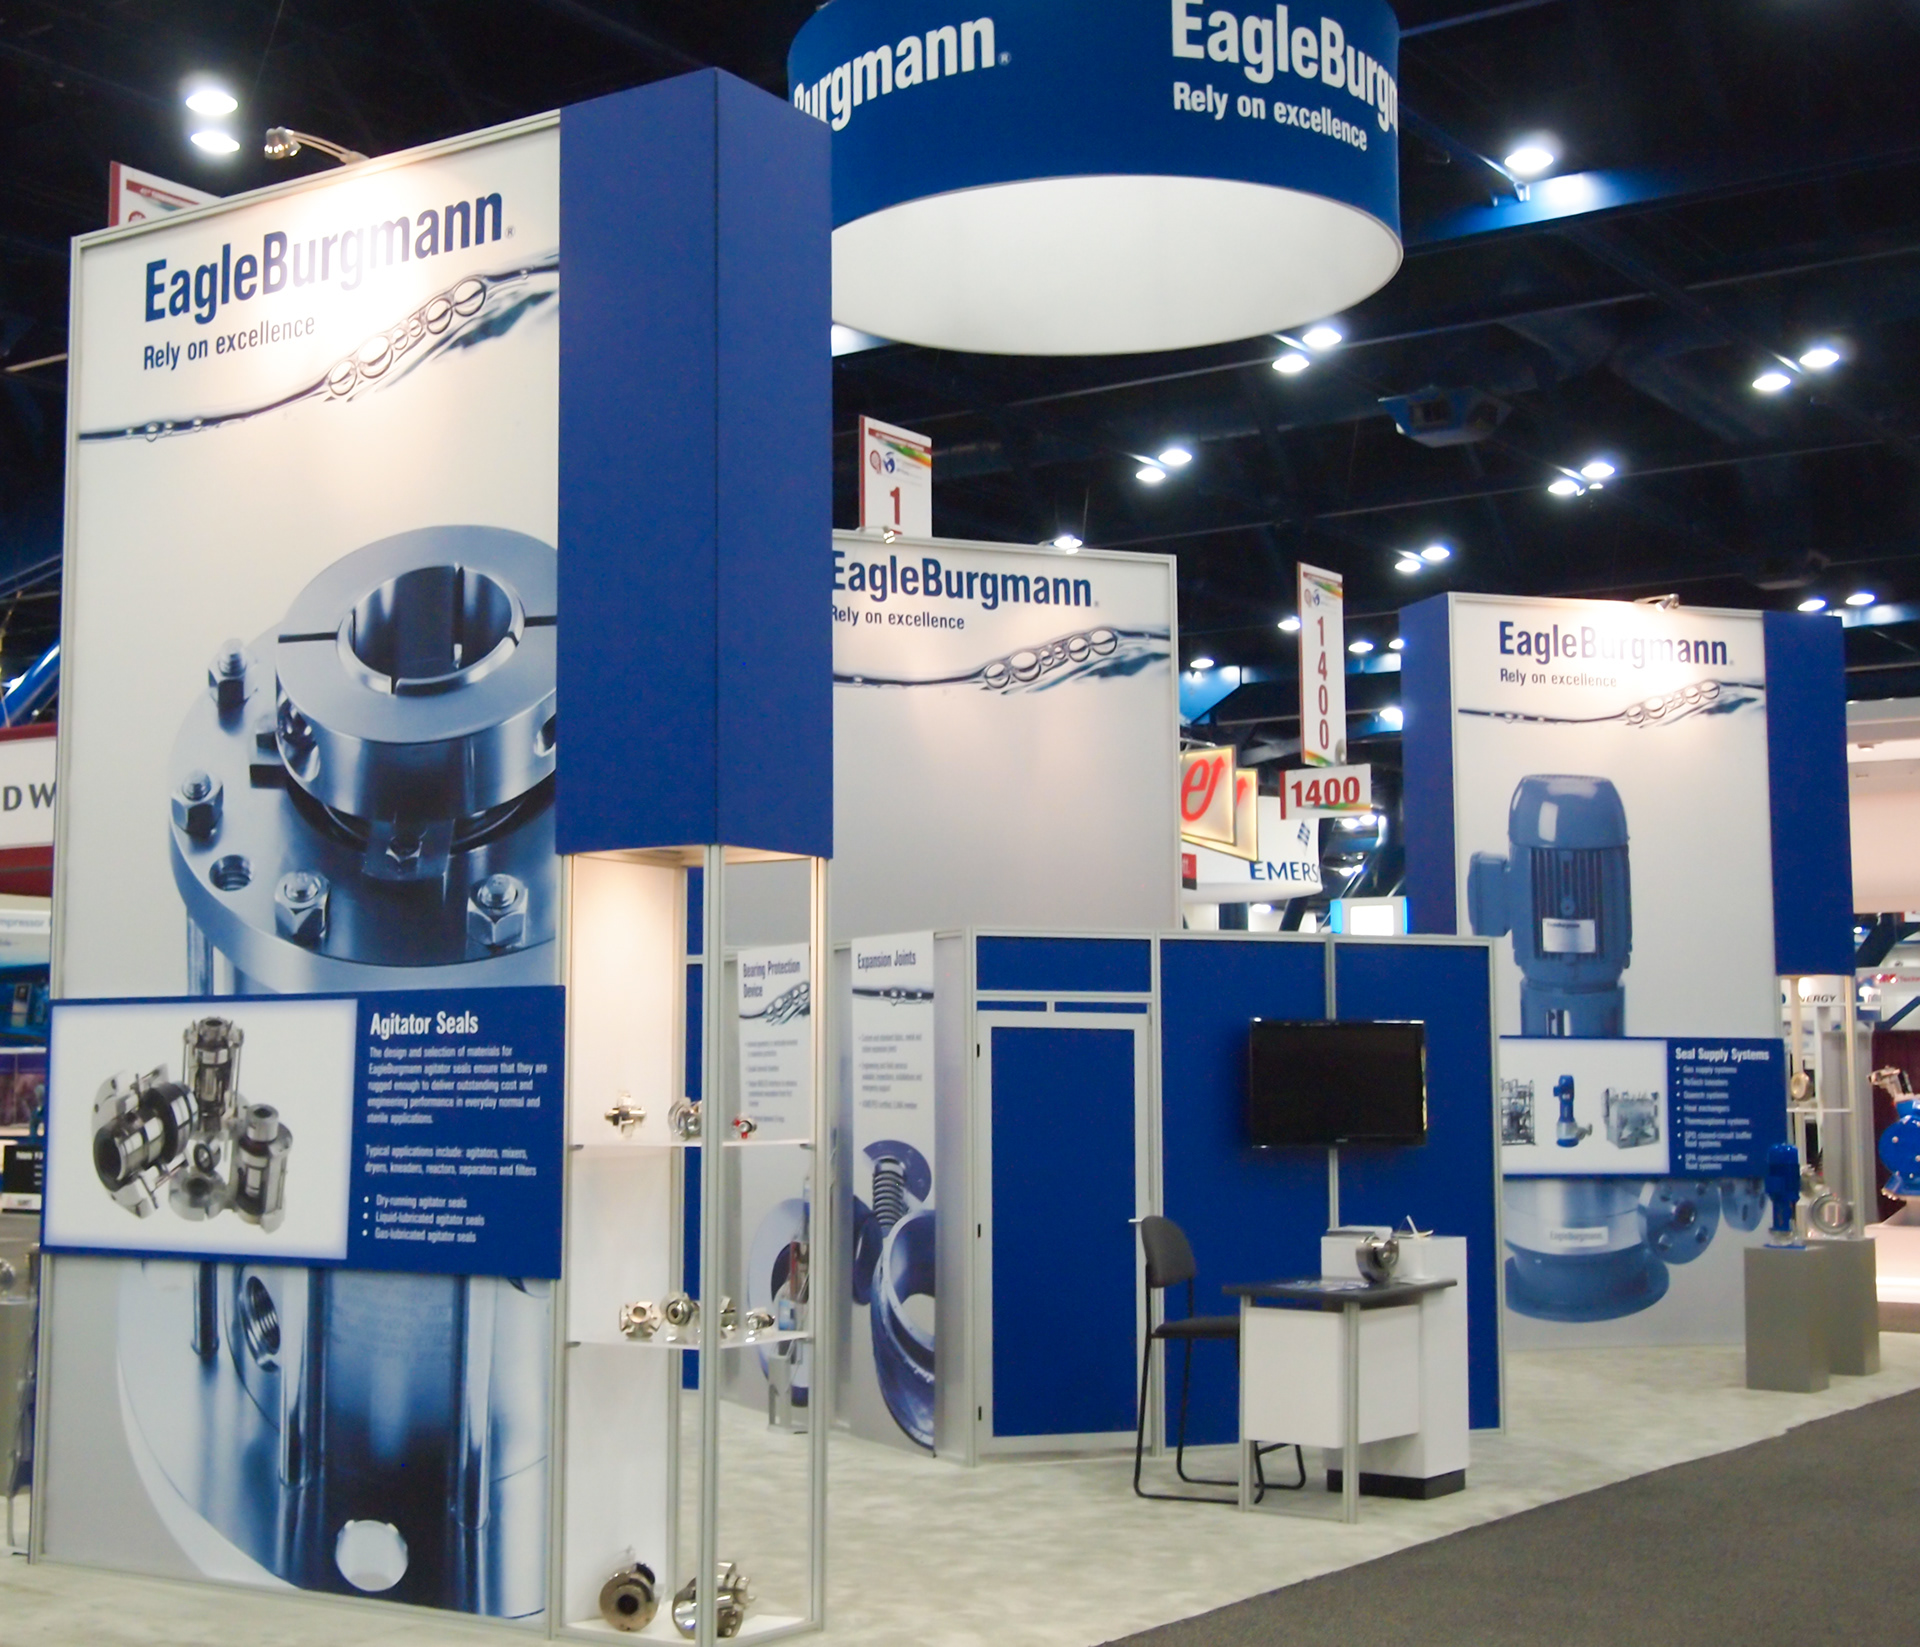 Modular Exhibition Stands Election : Scalise exhibits trade show displays graphics interiors design